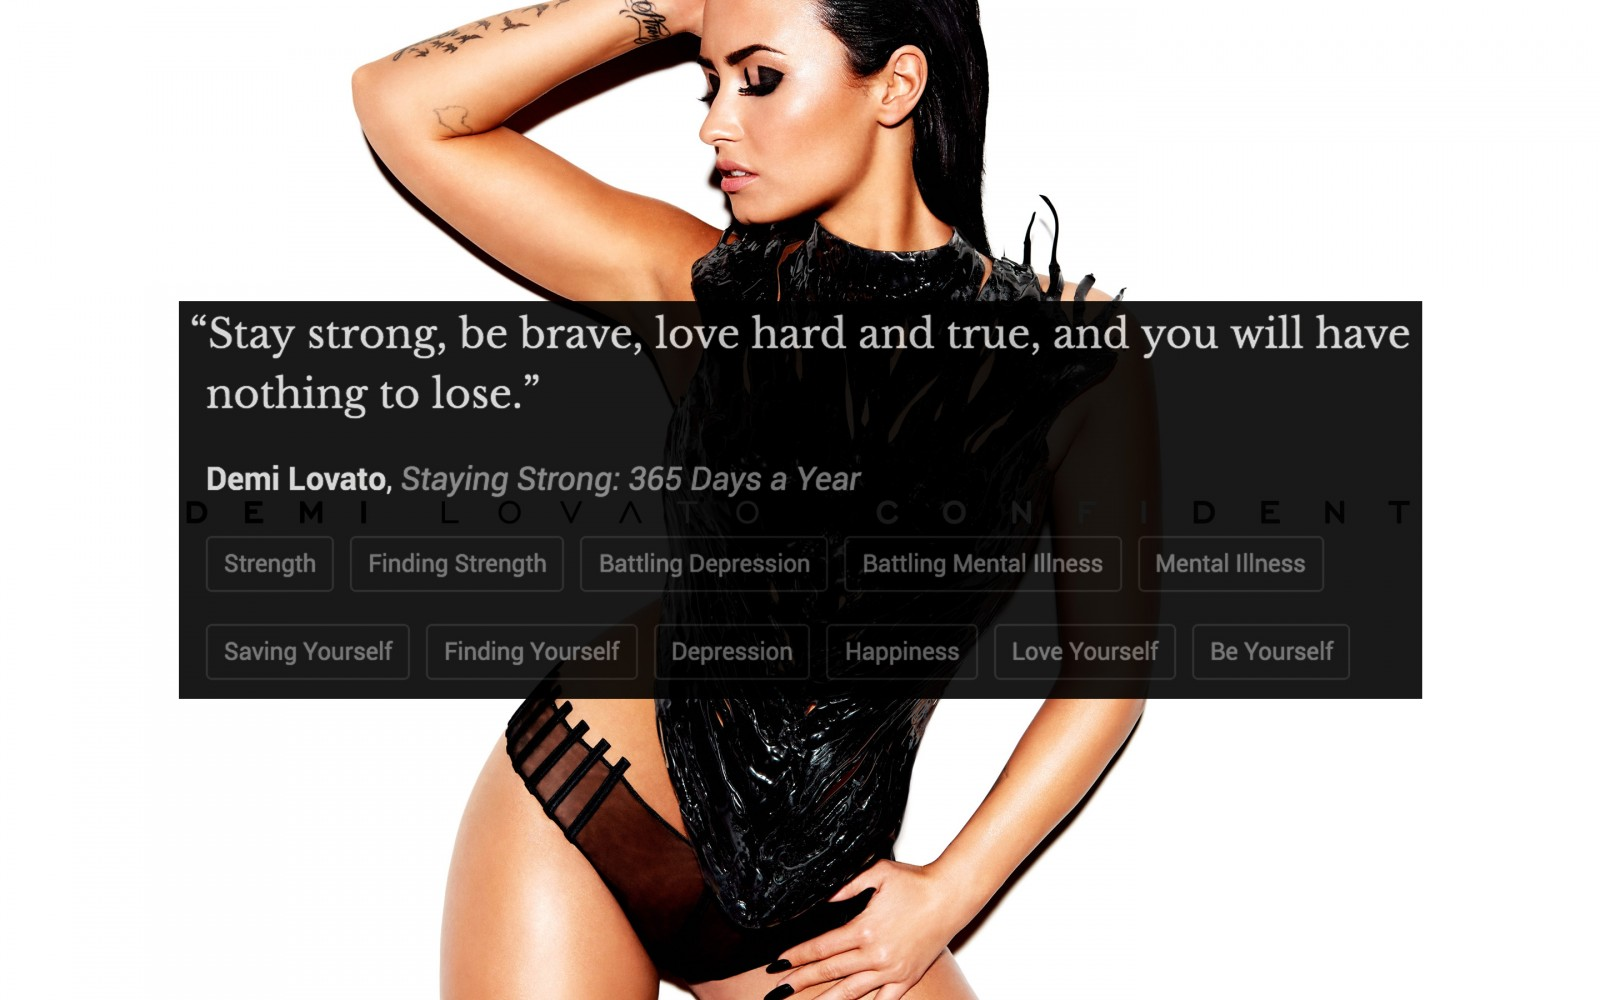 40 Powerful Demi Lovato Quotes To Help You Find The Strength To Face Another Day